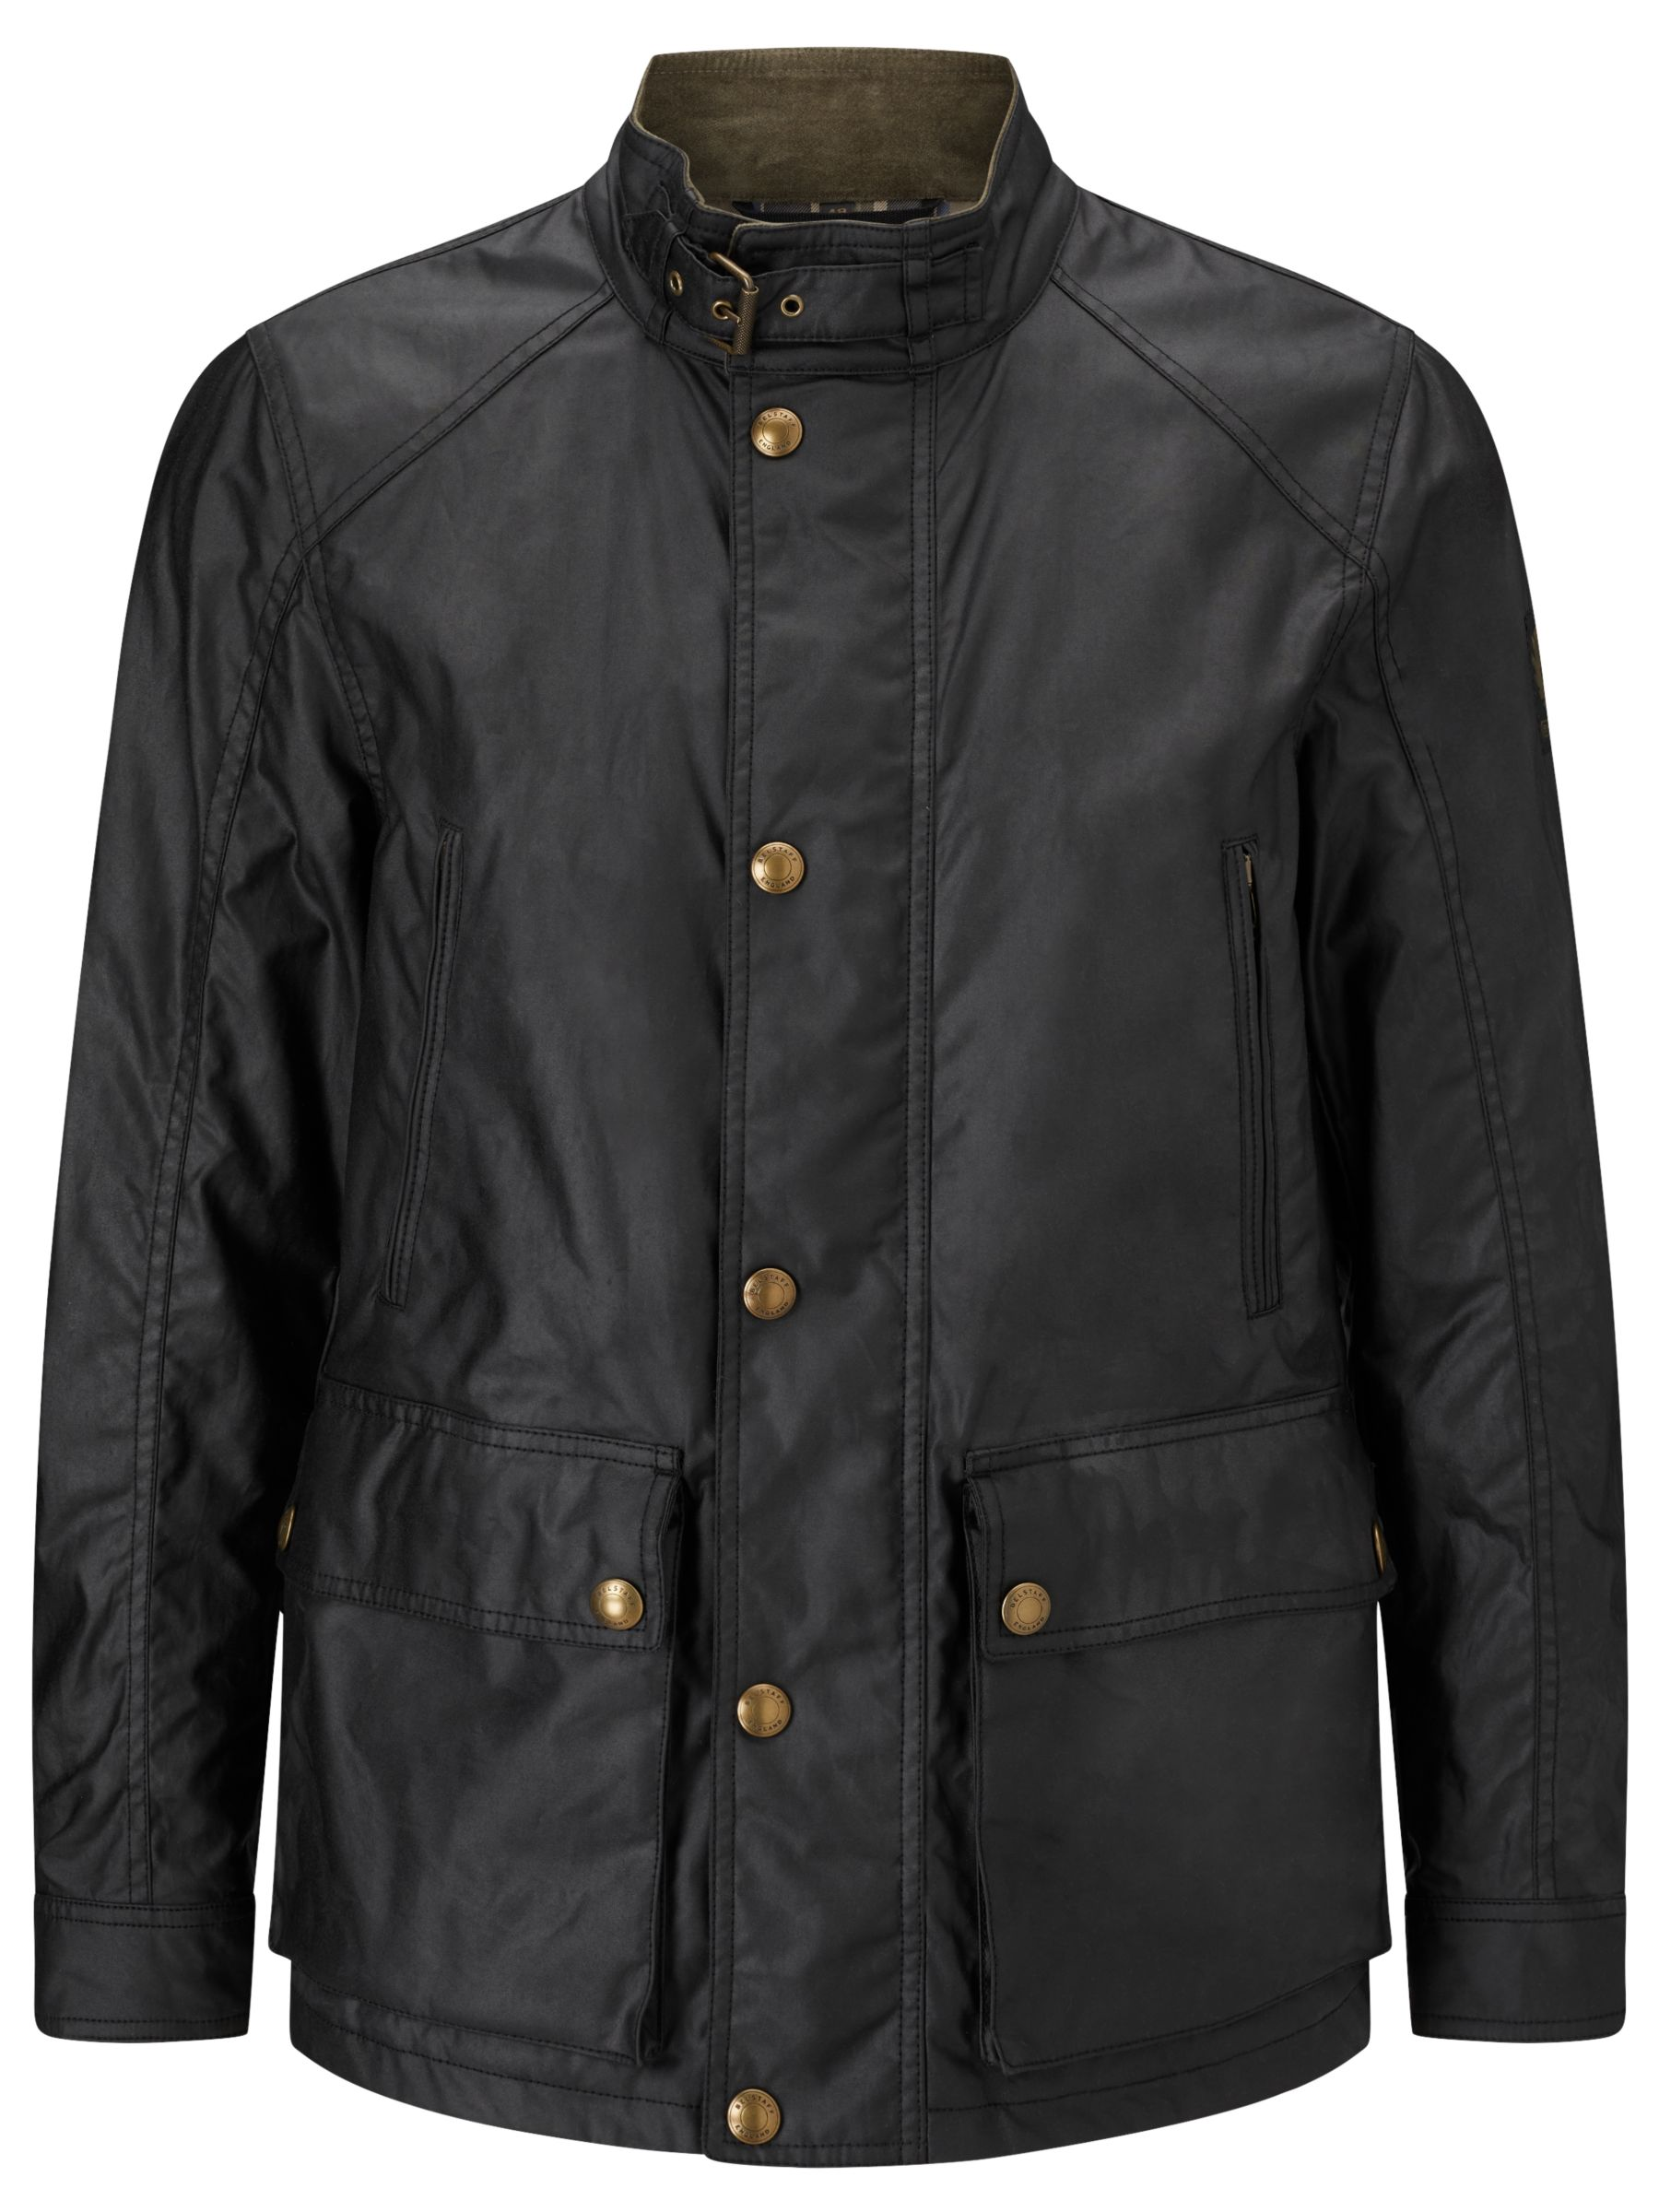 Belstaff Belstaff Tourmaster Water Resistant Biker Waxed Cotton Jacket